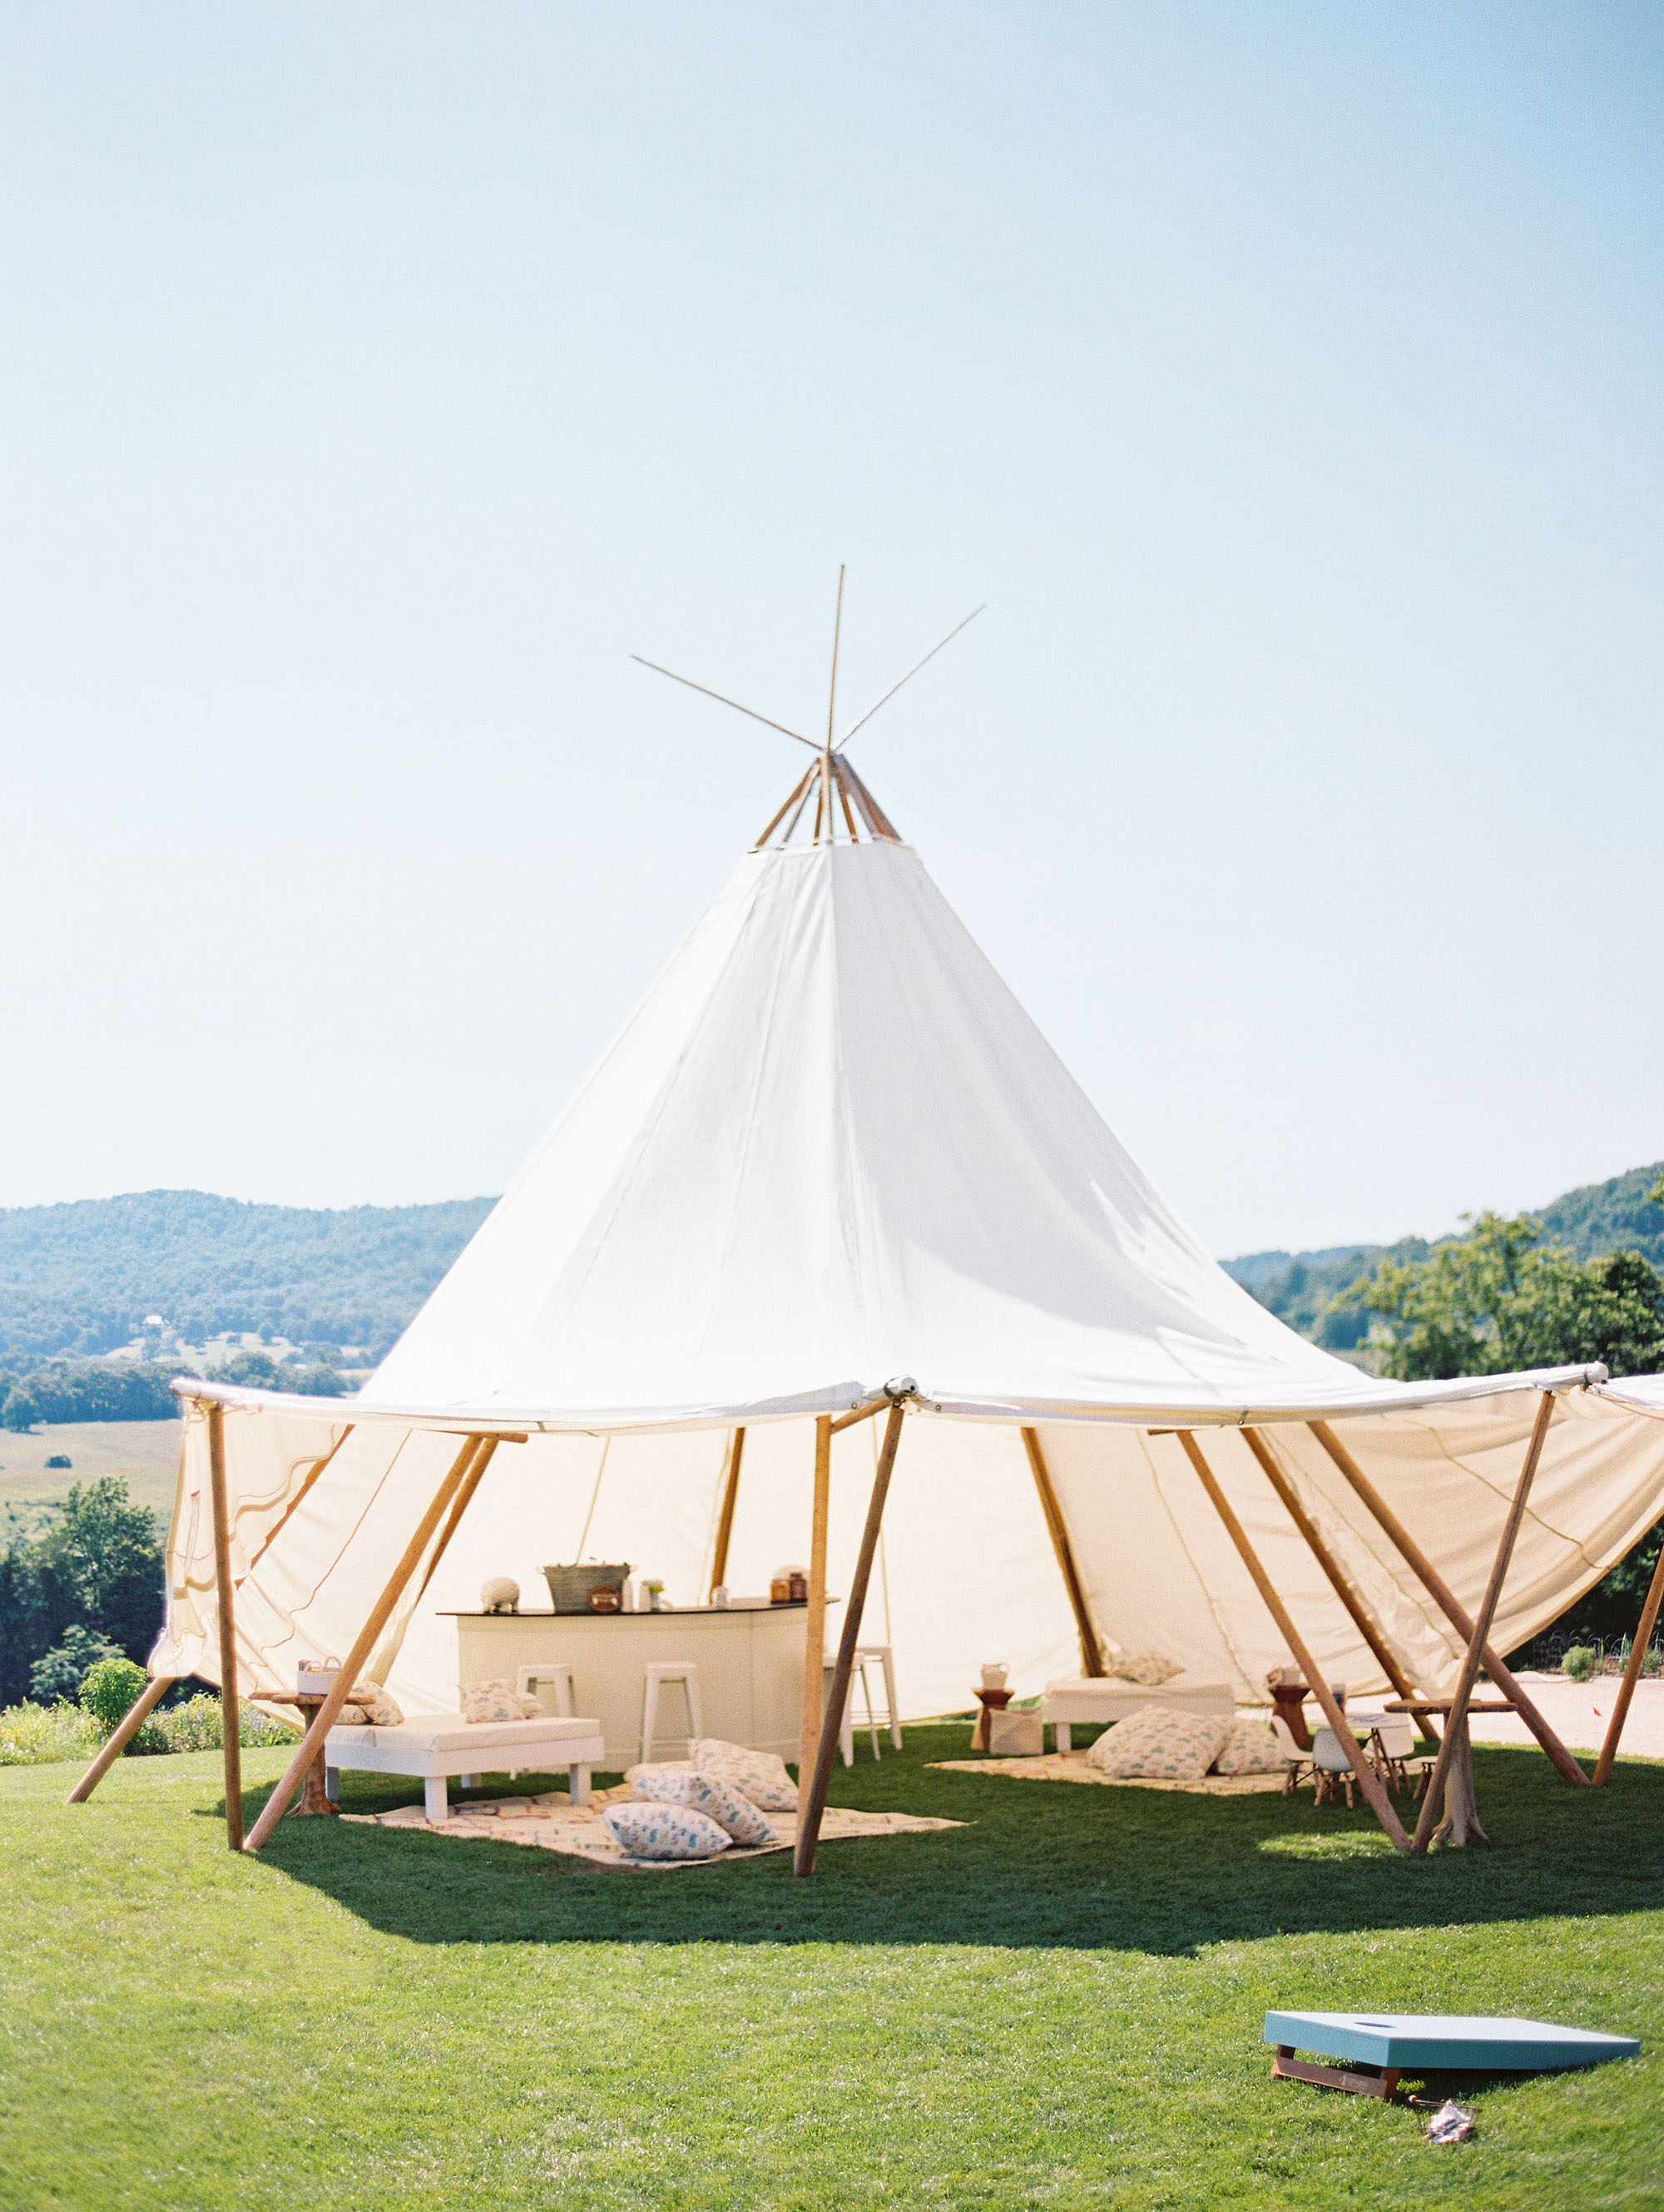 hannah chris wedding north garden va teepee